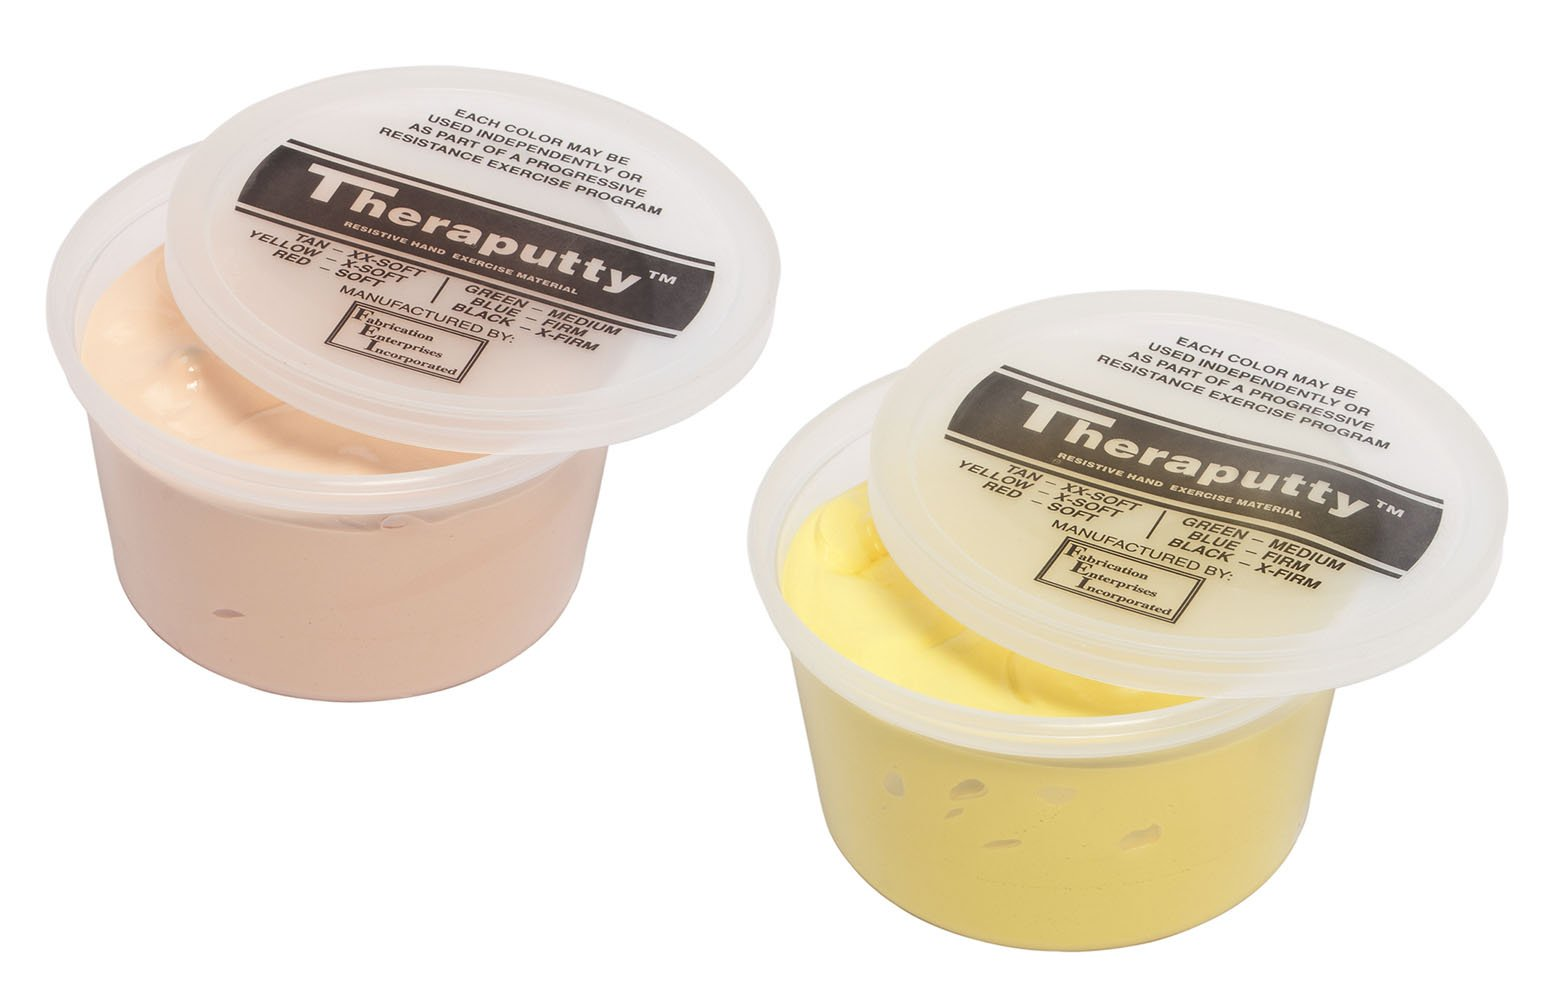 TheraPutty Standard Exercise Putty Tan - XX-Soft, Yellow - X-soft 1 LB Each - Bundle